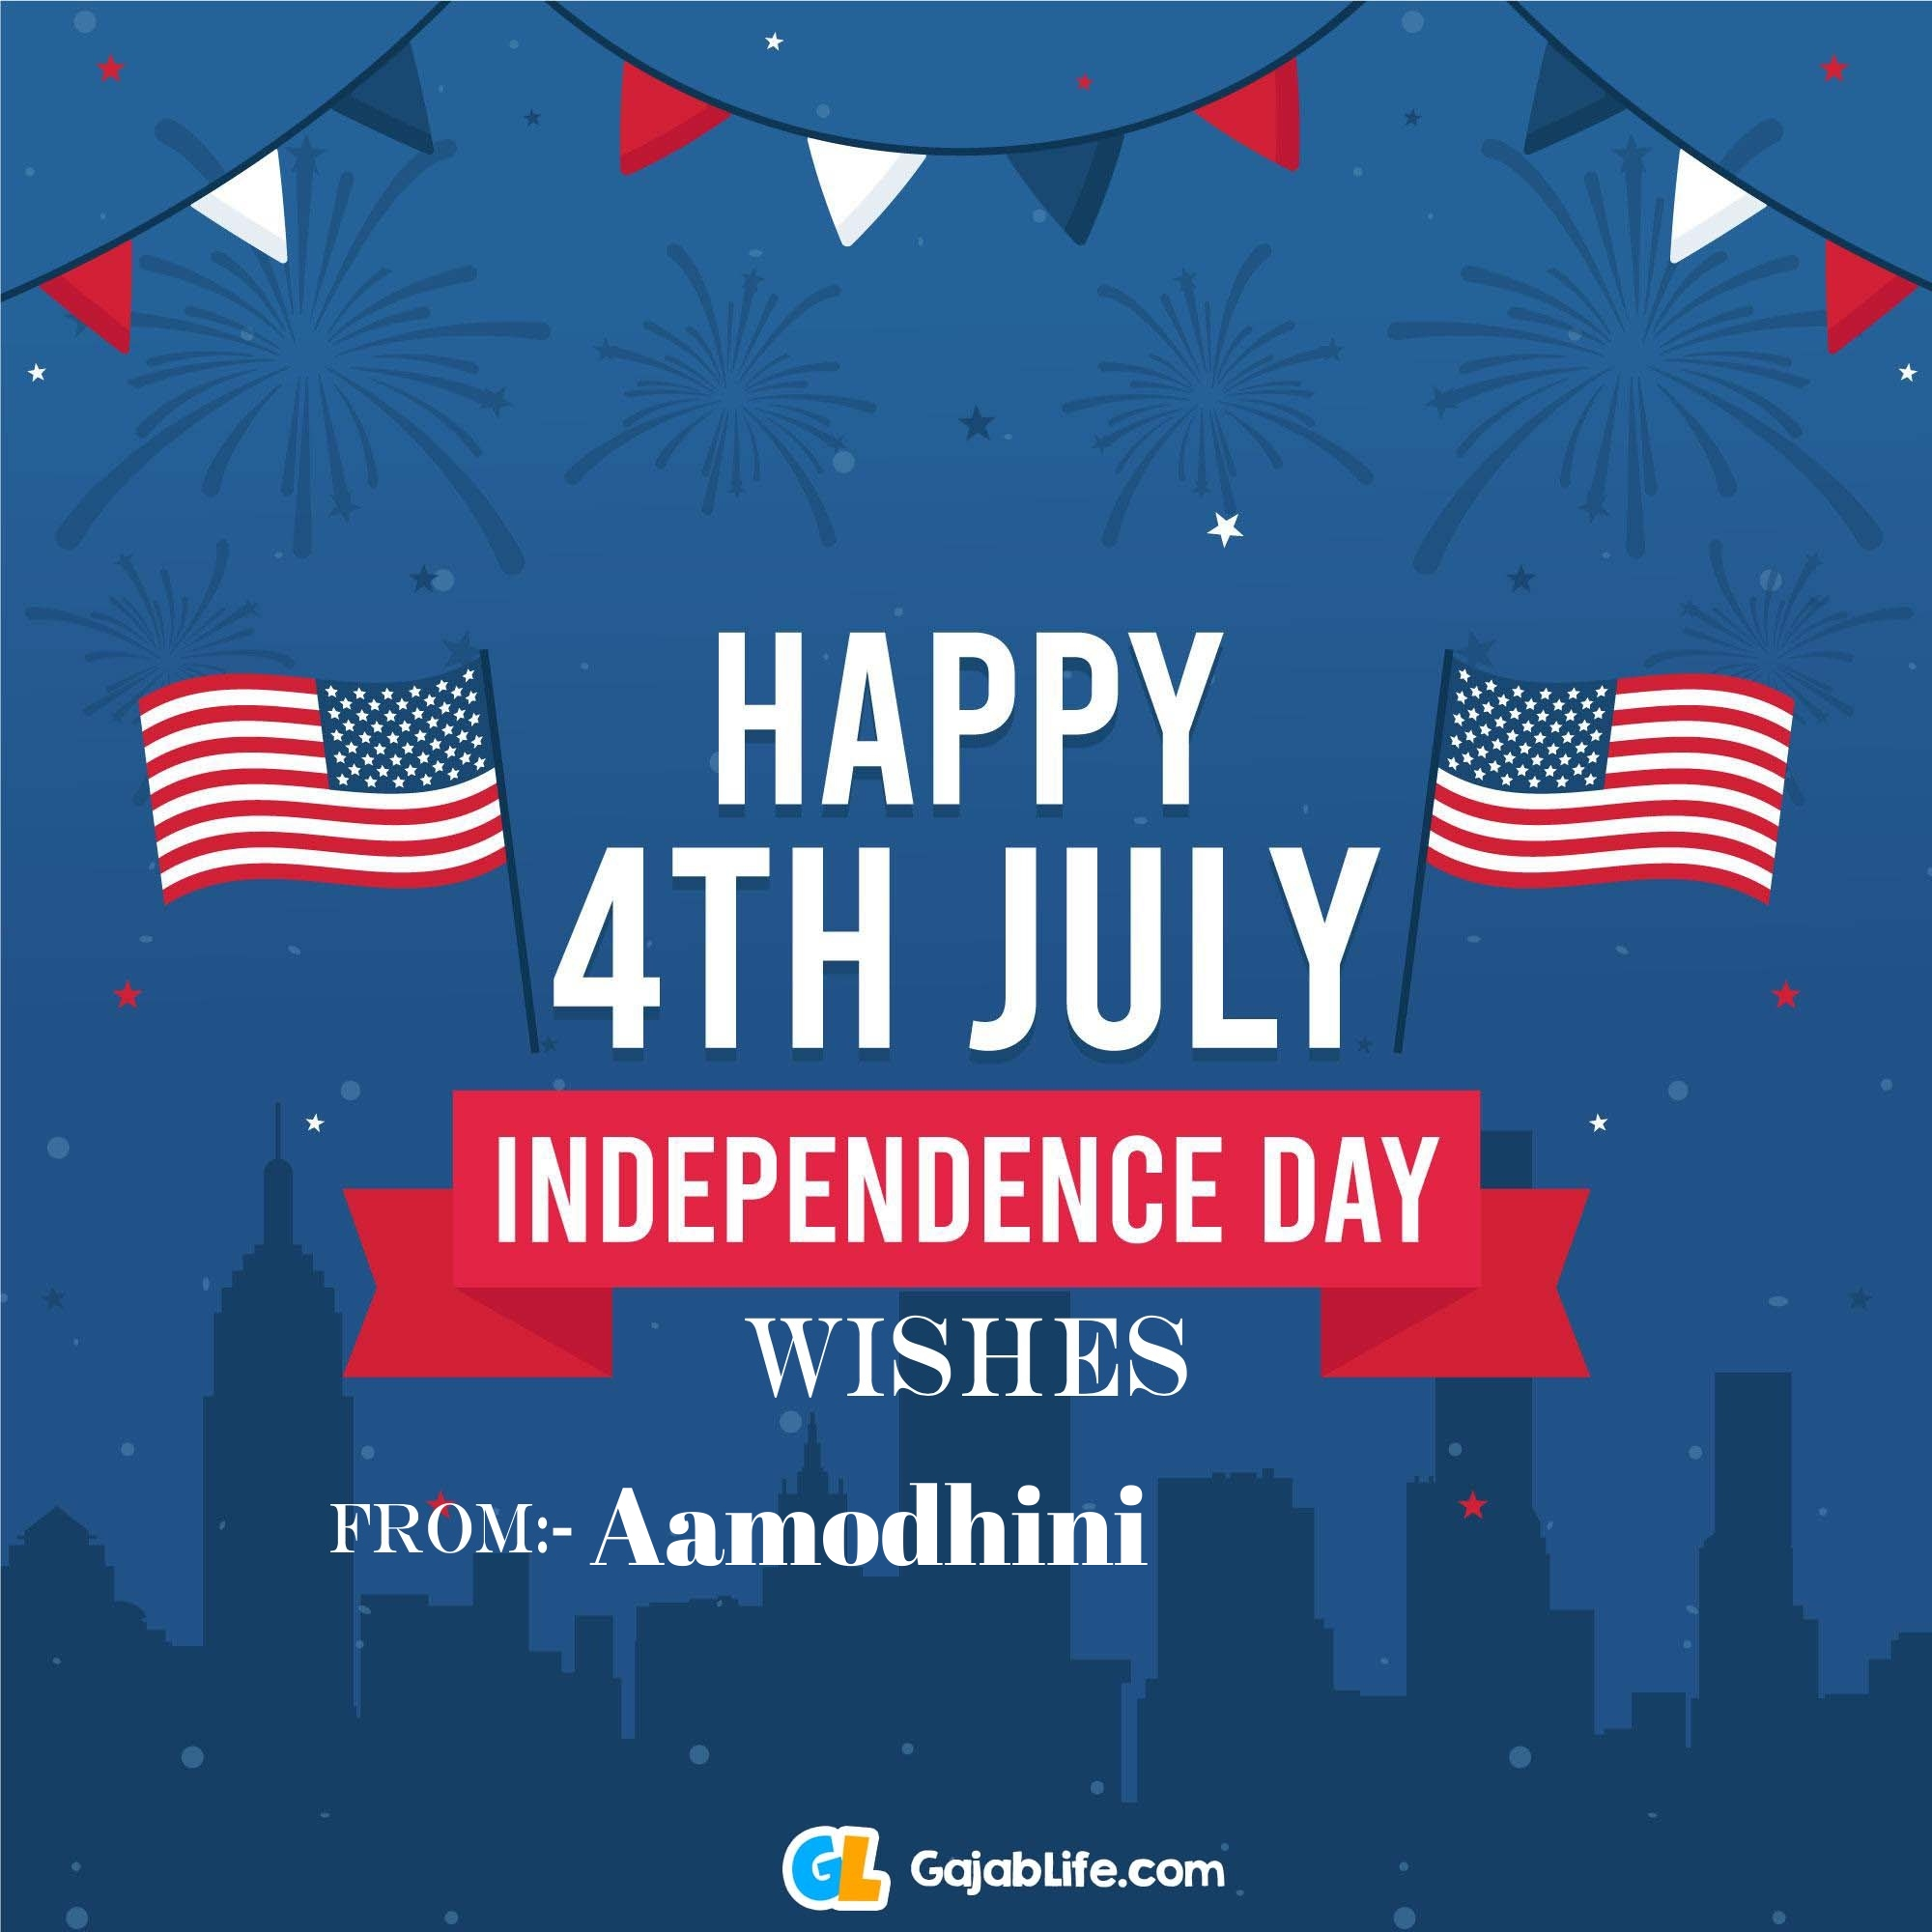 Aamodhini happy independence day united states of america images